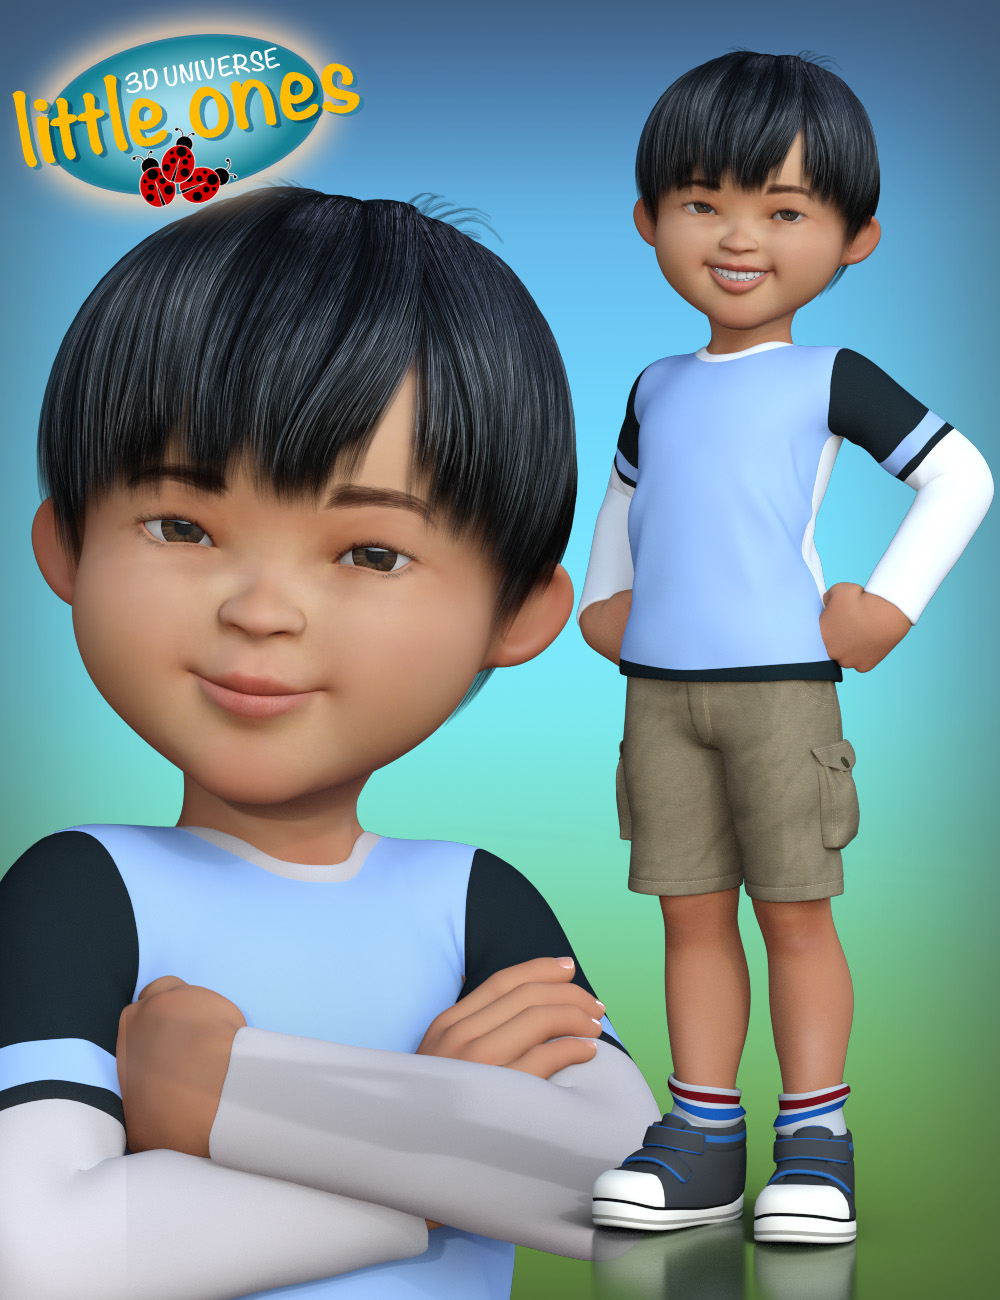 Little Ones (Asian Male) for Genesis 3 Male by: 3D Universe, 3D Models by Daz 3D